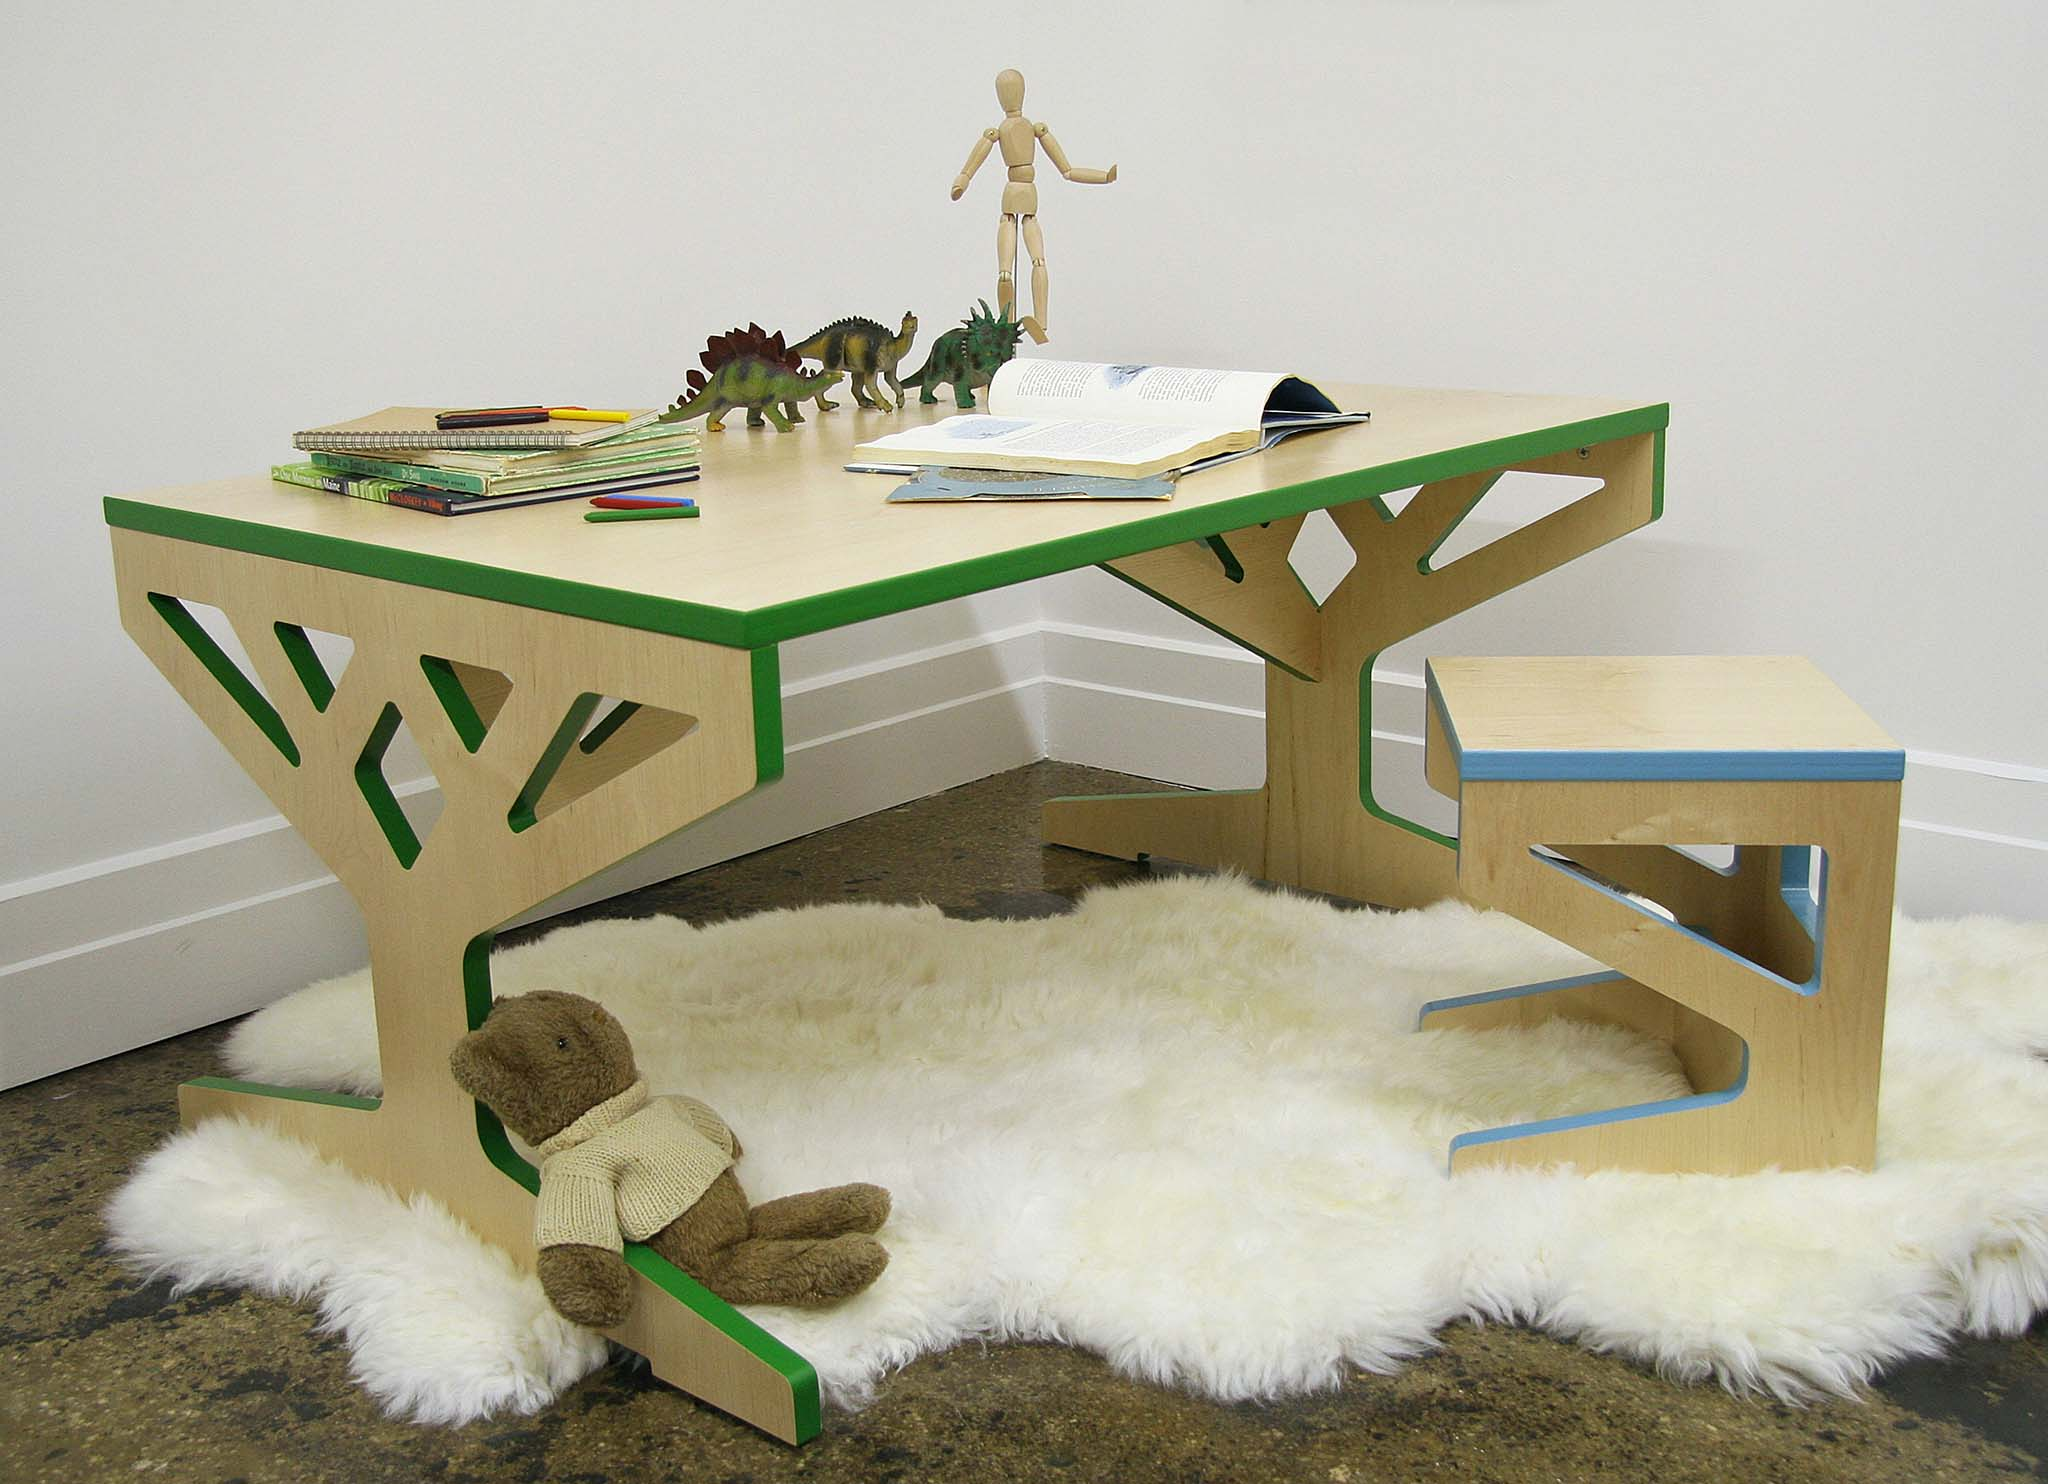 Tree Table Collection by April Hannah. Nature inspired. Eco-friendly.